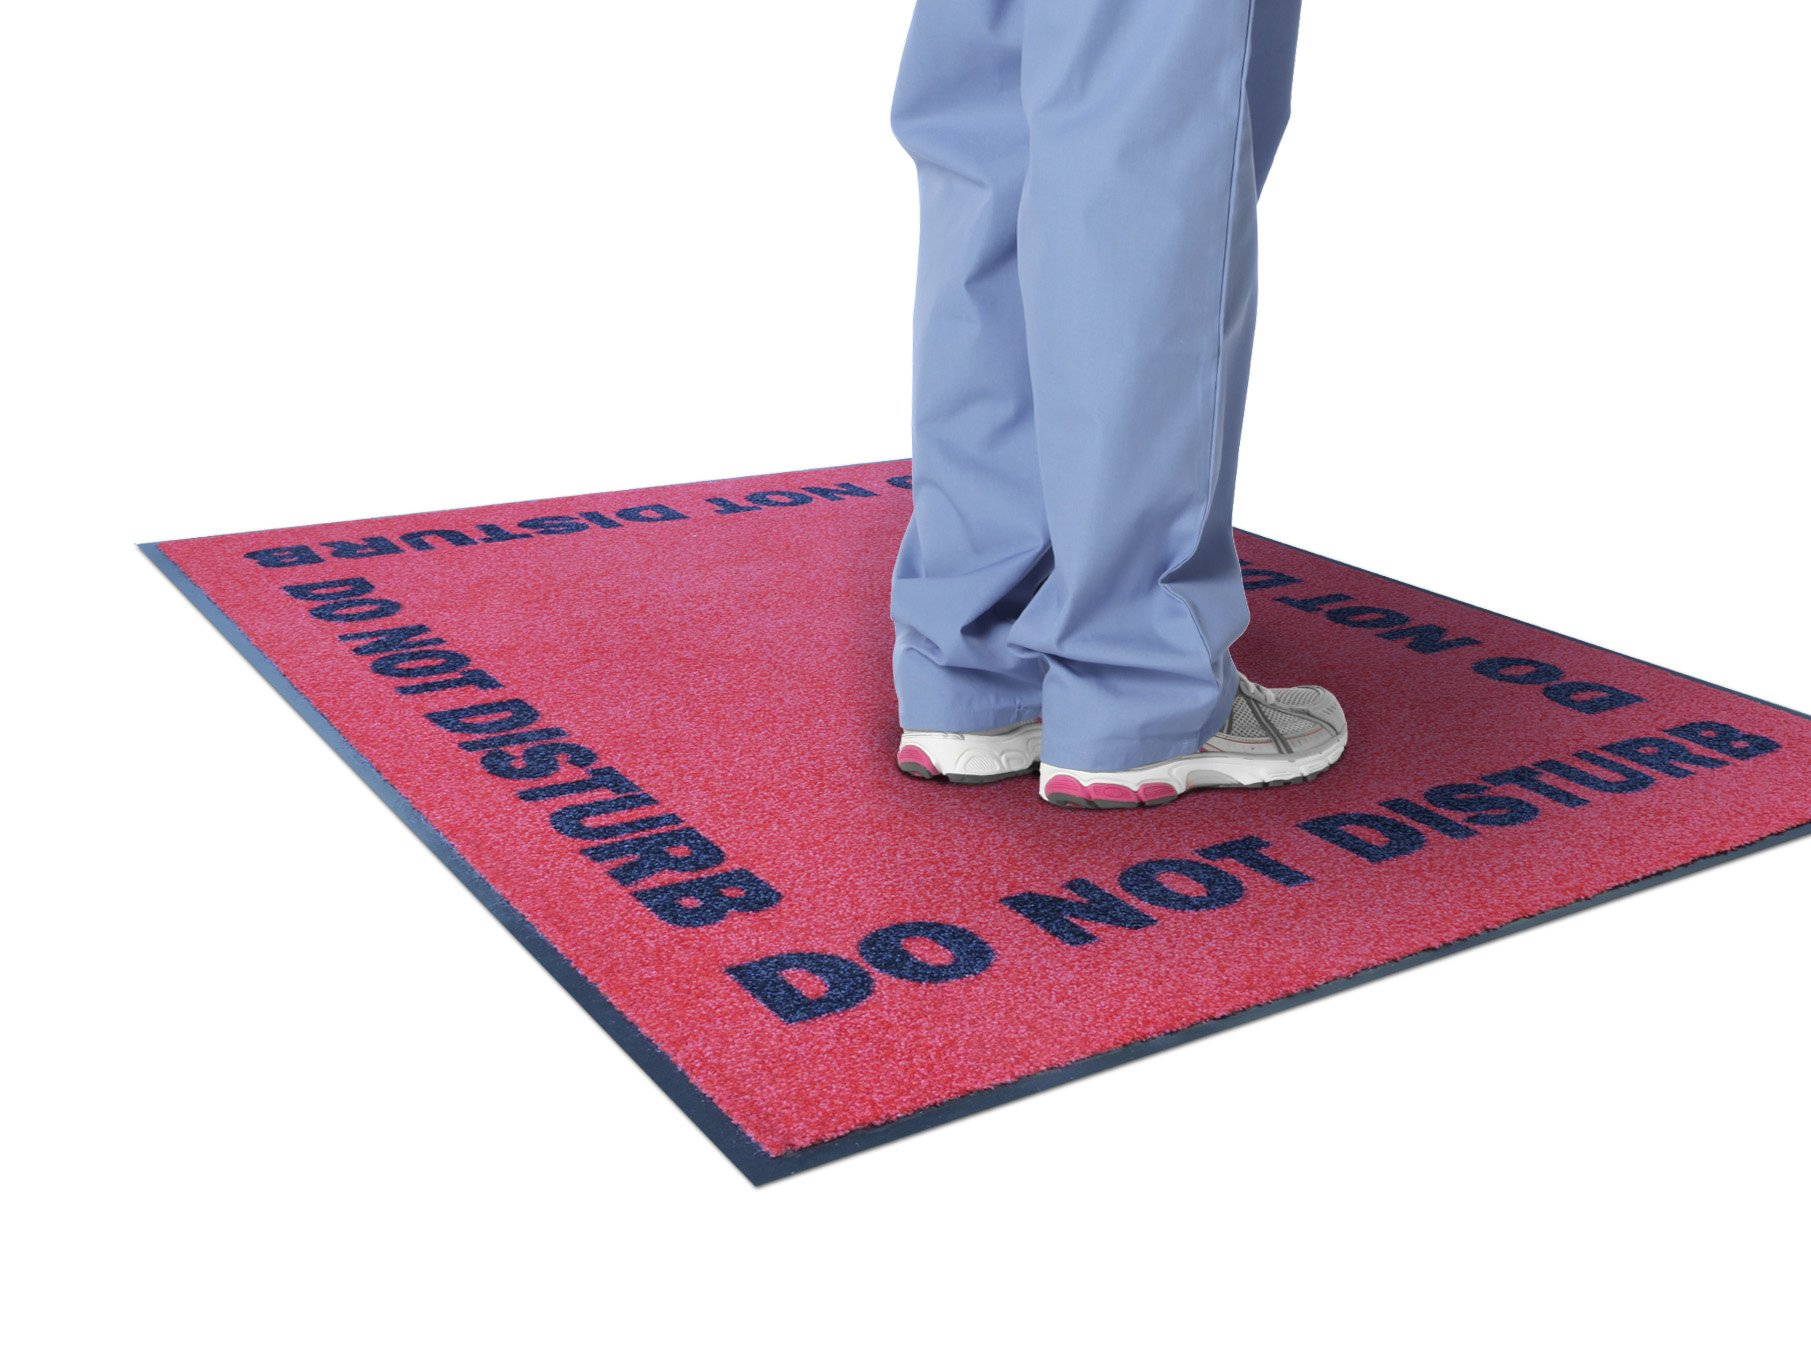 NoTrax 194SDD35RD DND (Do Not Disturb) Printed Floor Mat, 3' x 5', Red